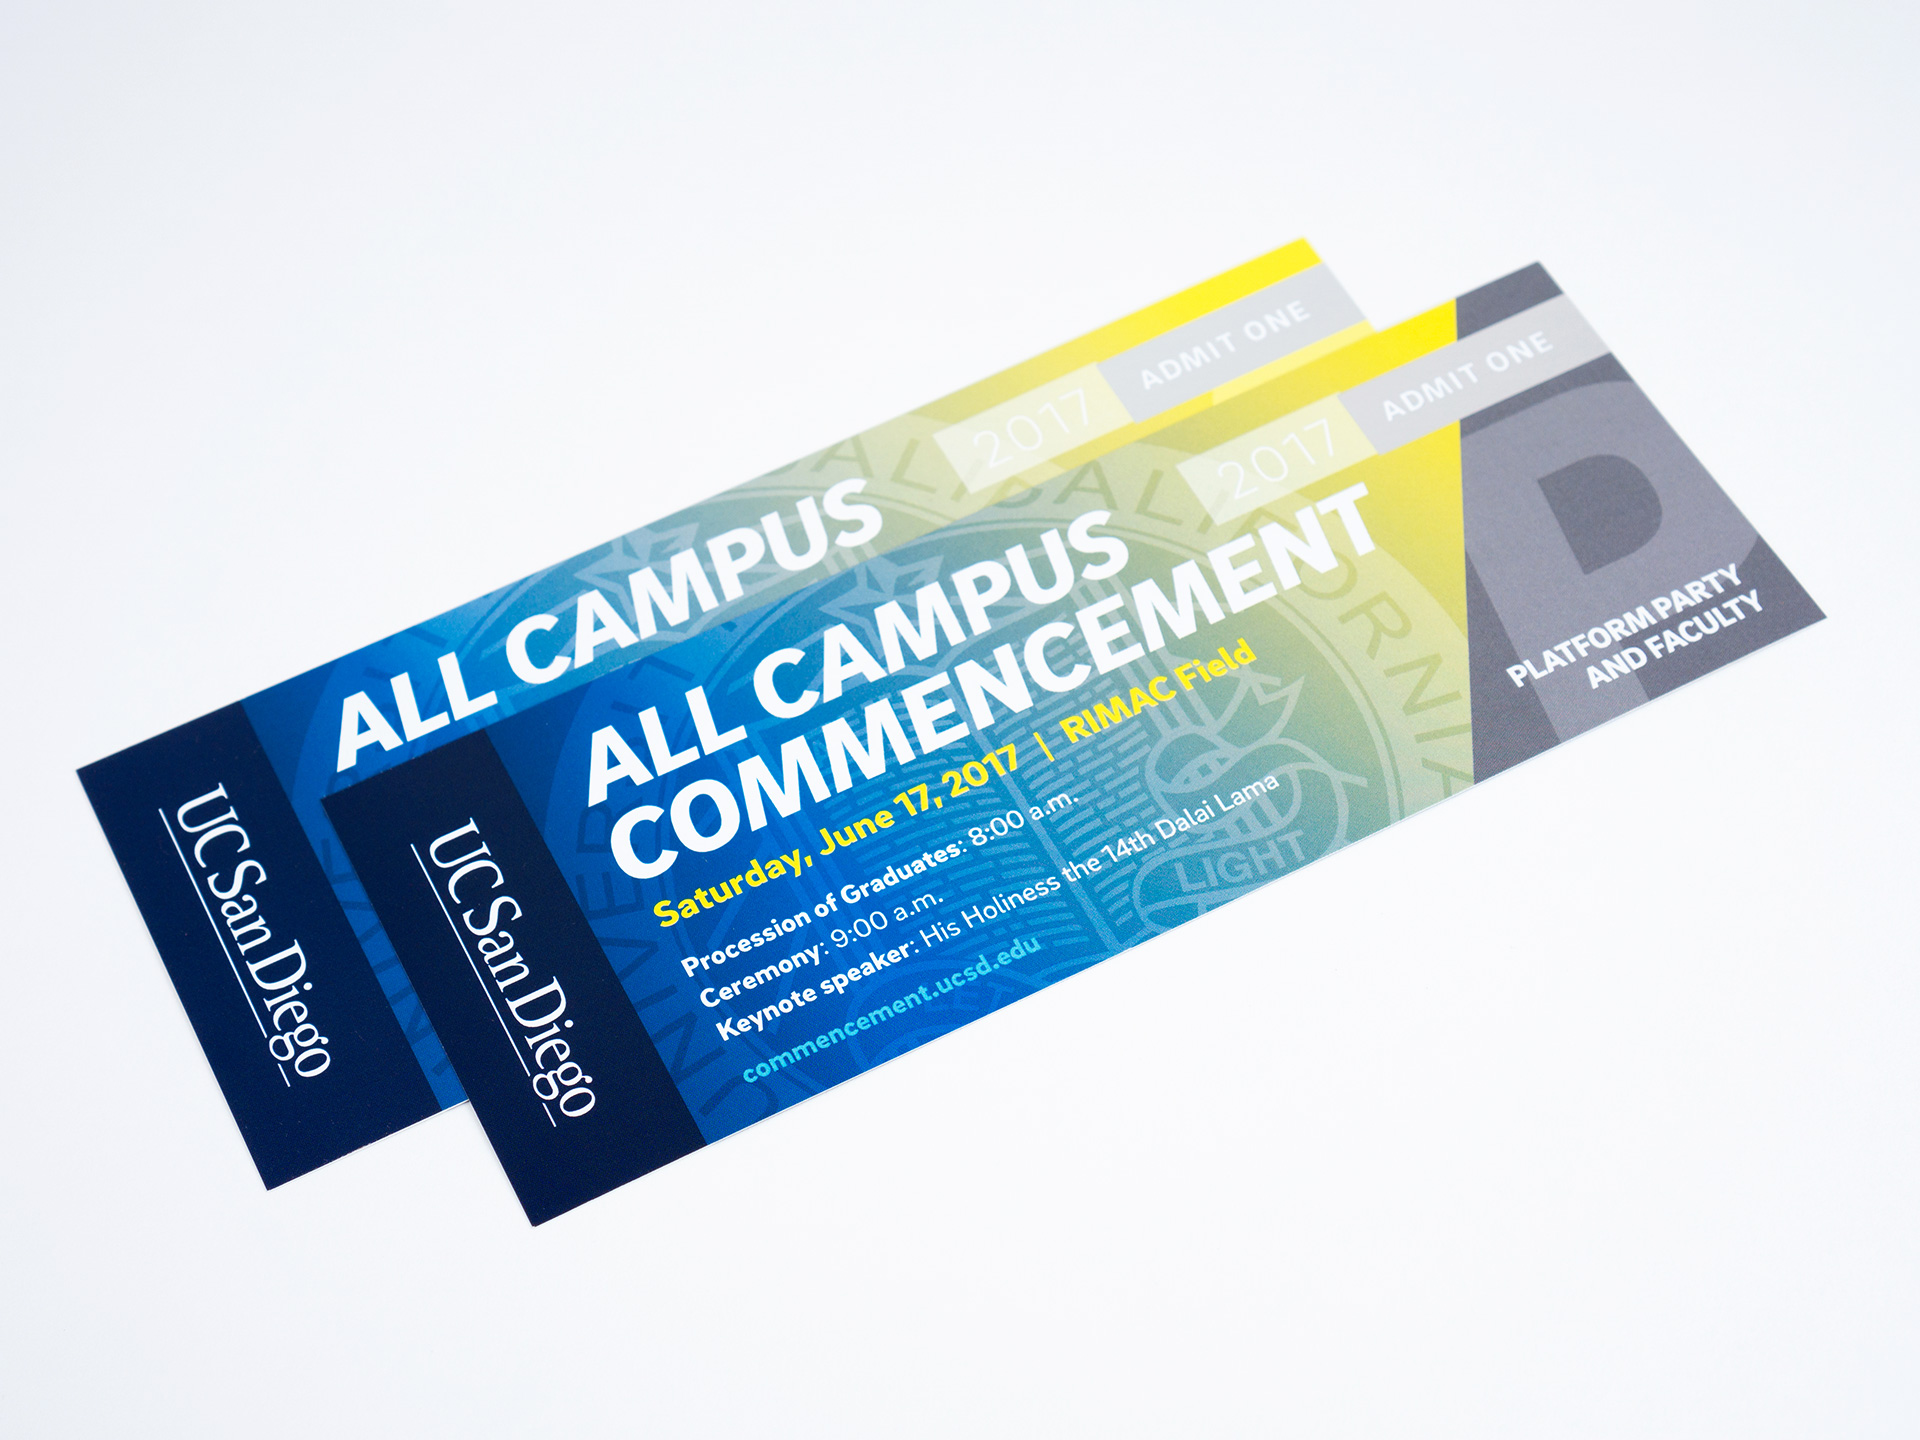 UC San Diego - 2017 Commencement Weekend Event Tickets